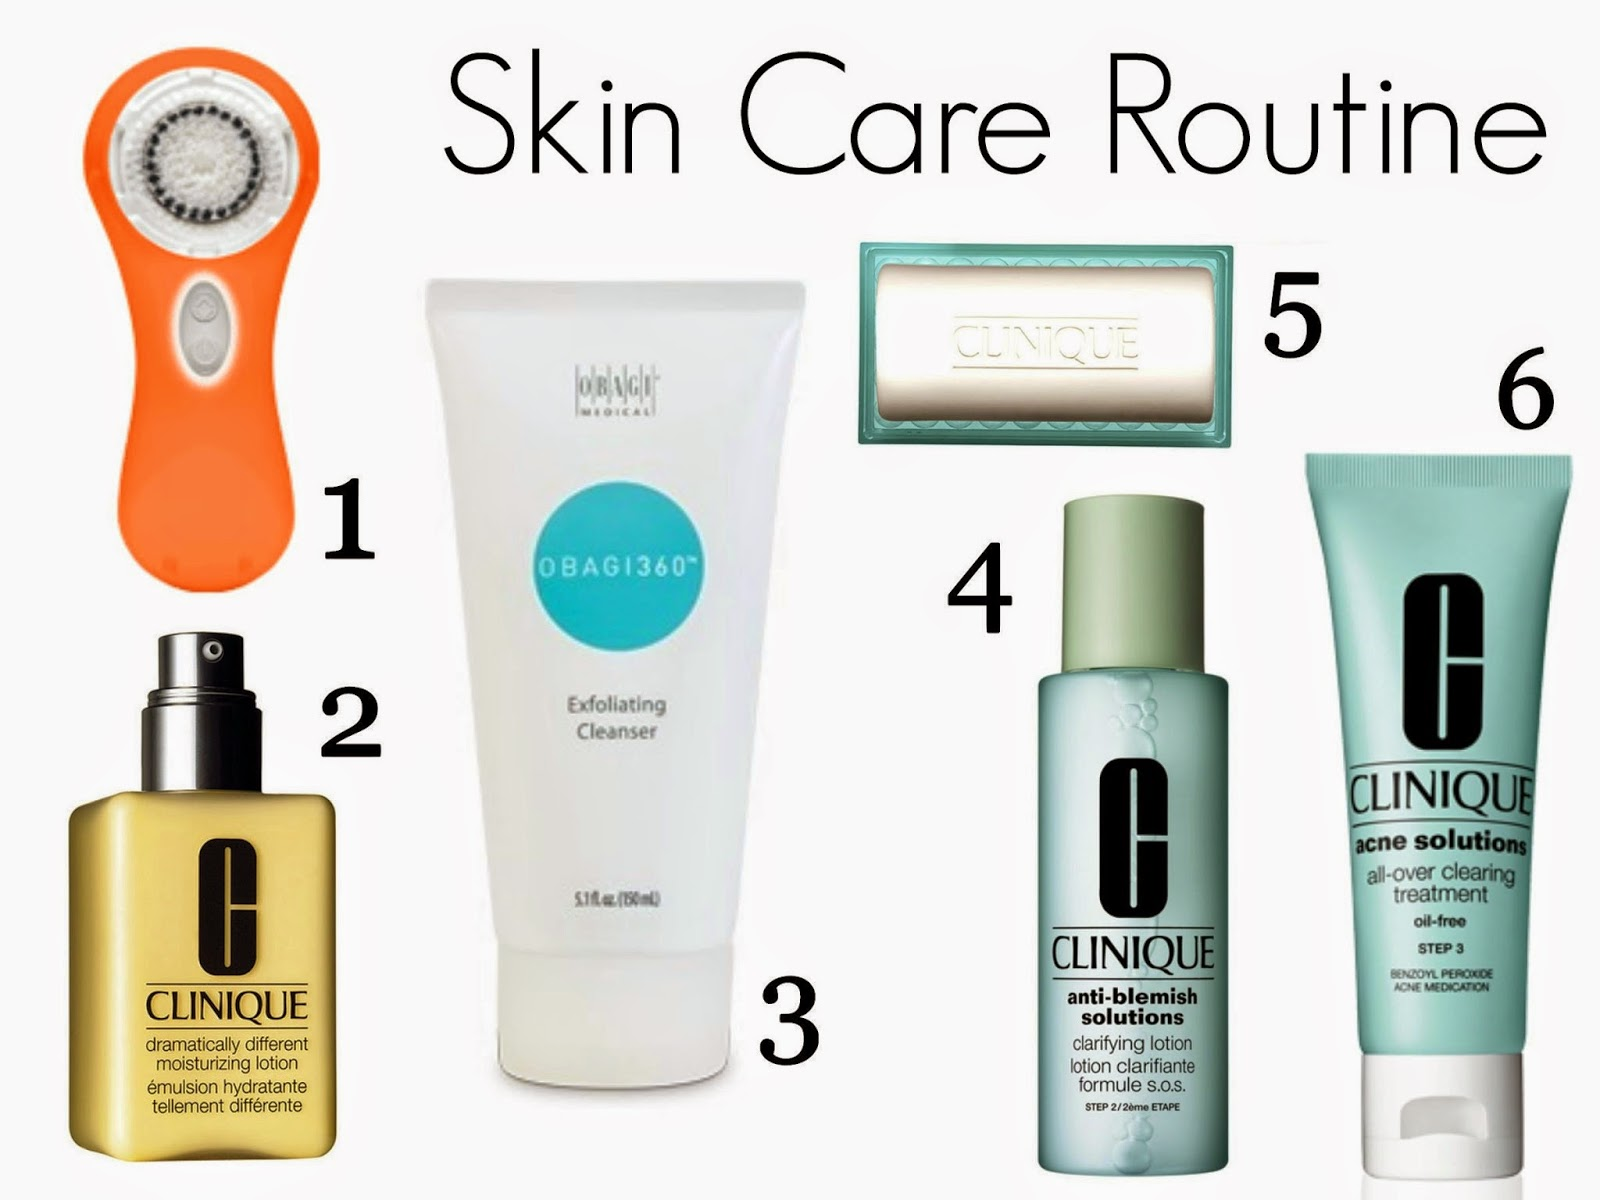 Acne-Busting Skincare Routine